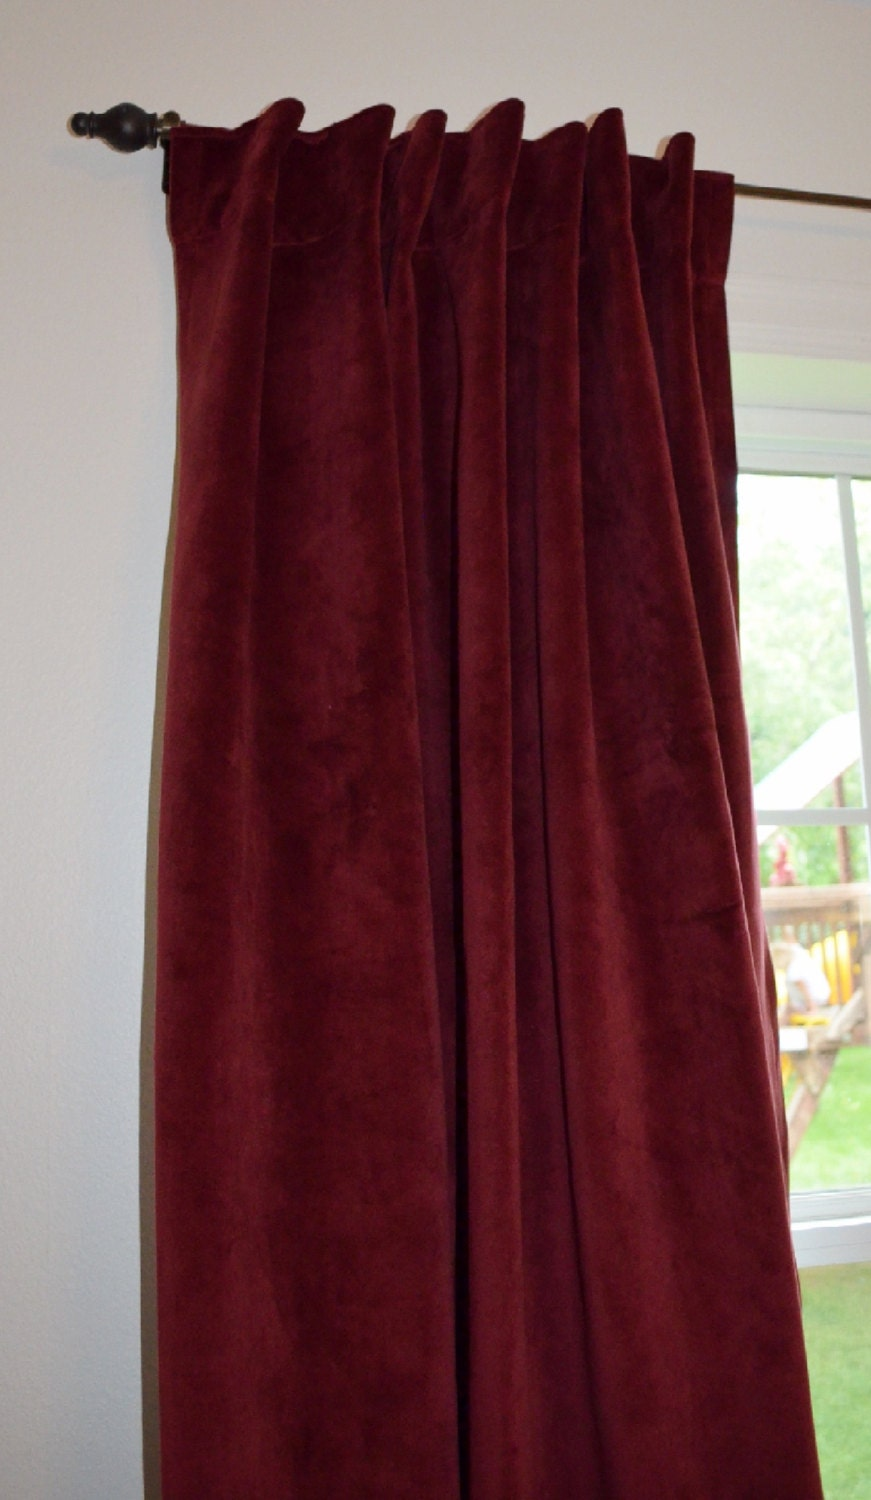 Kelly green velvet curtains - Previous Item Created With Sketch Next Item Created With Sketch